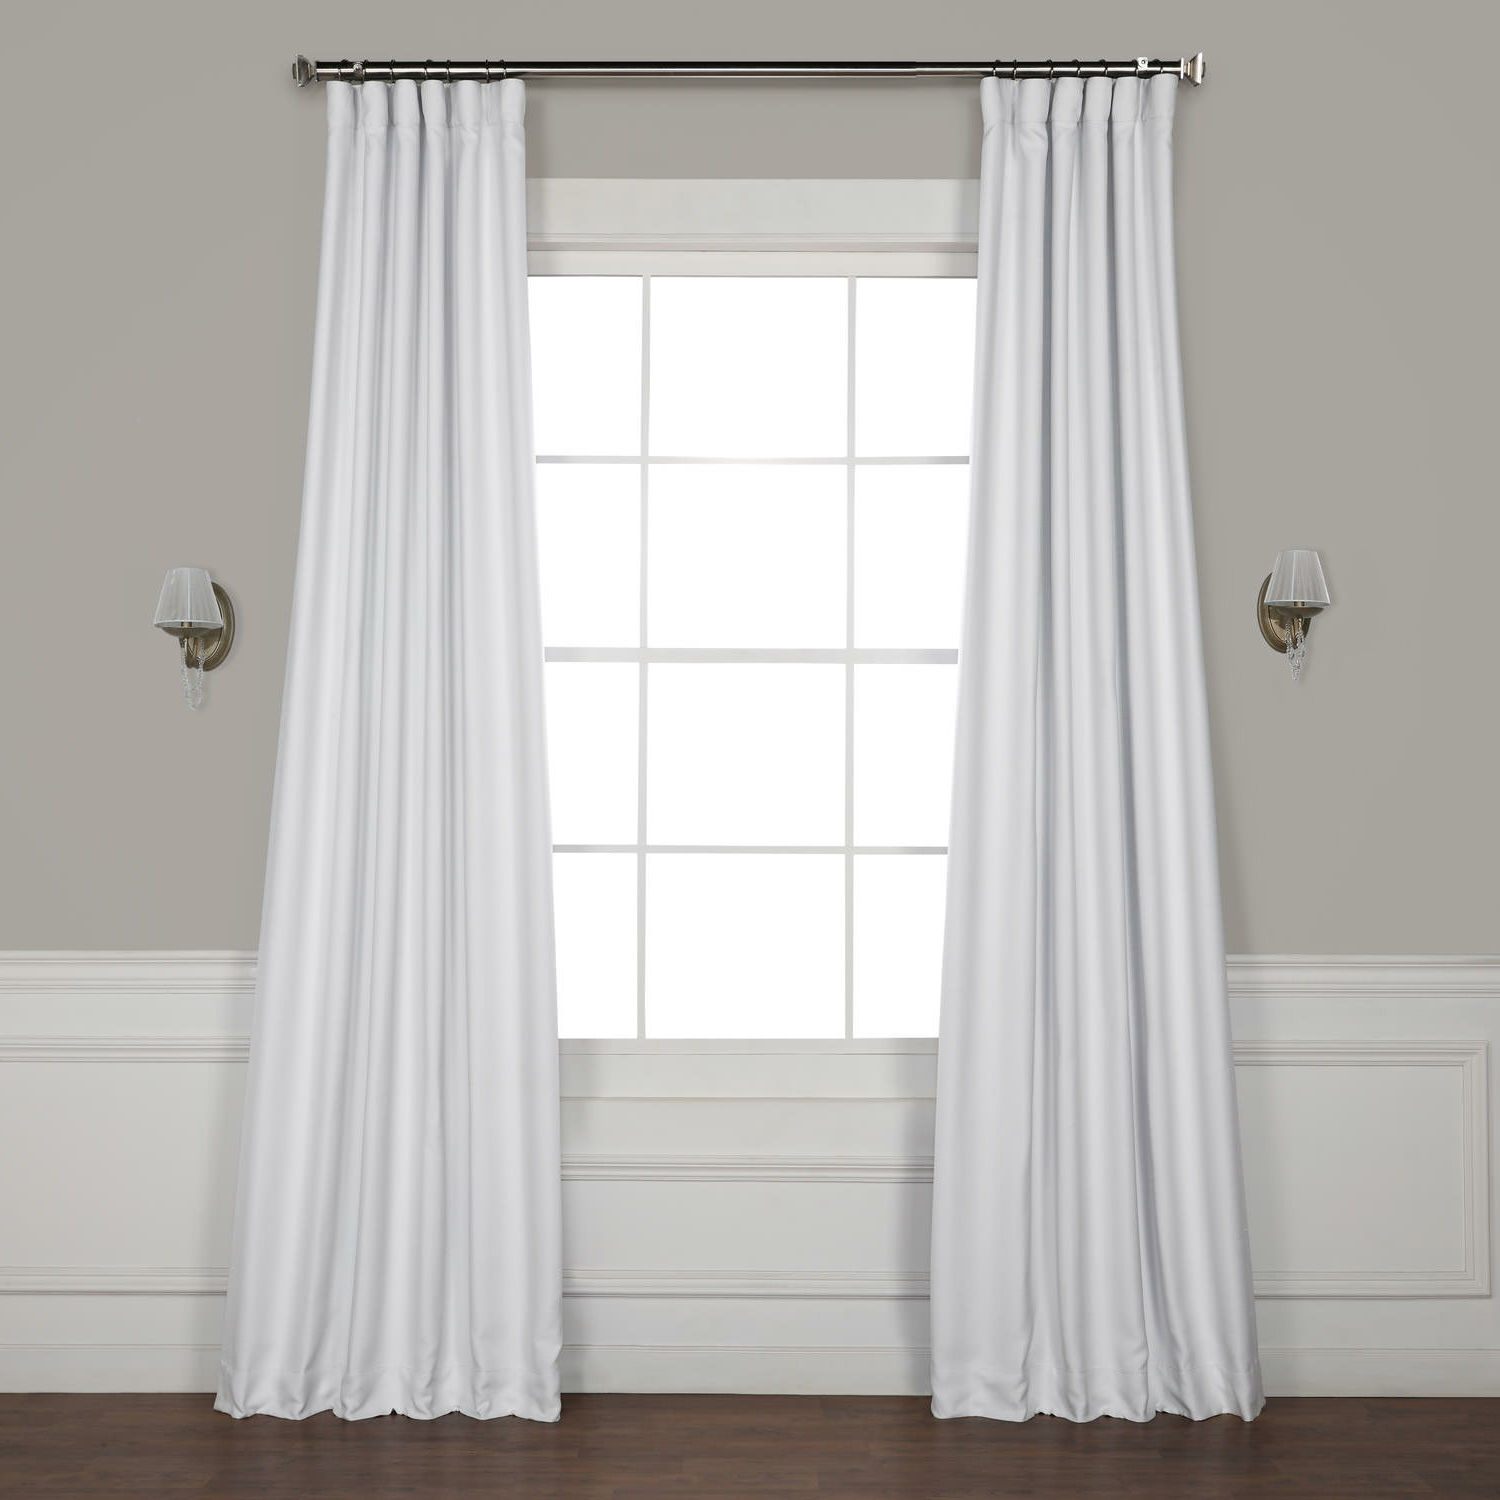 Allmodern In 2021 Linen Button Window Curtains Single Panel (View 19 of 20)